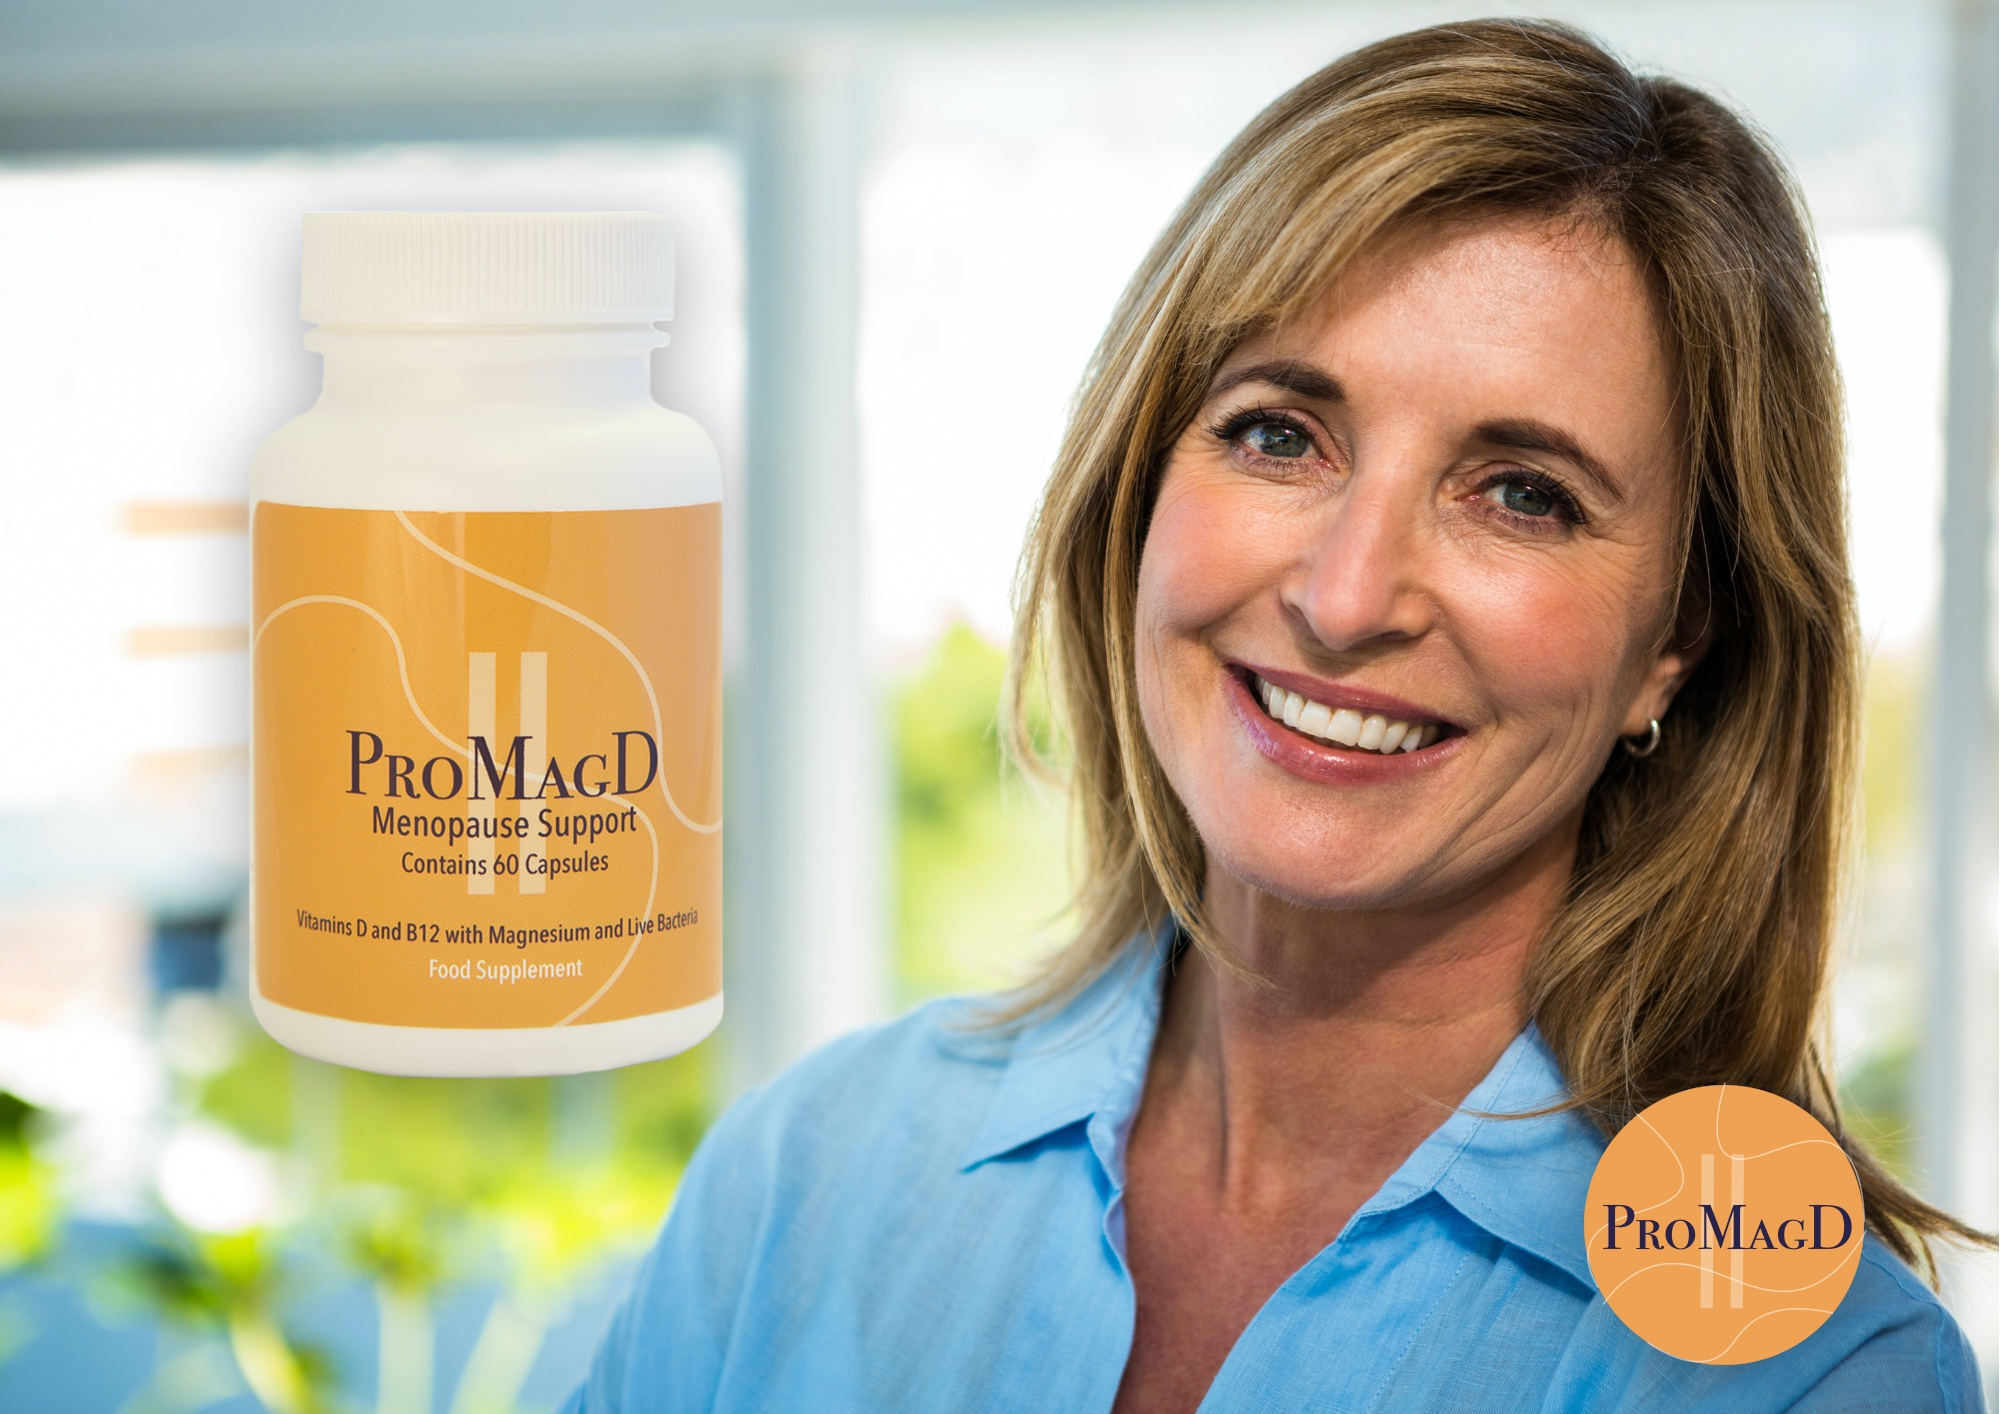 NEW MULTIVITAMIN TO EASE MENOPAUSE SYMPTOMS